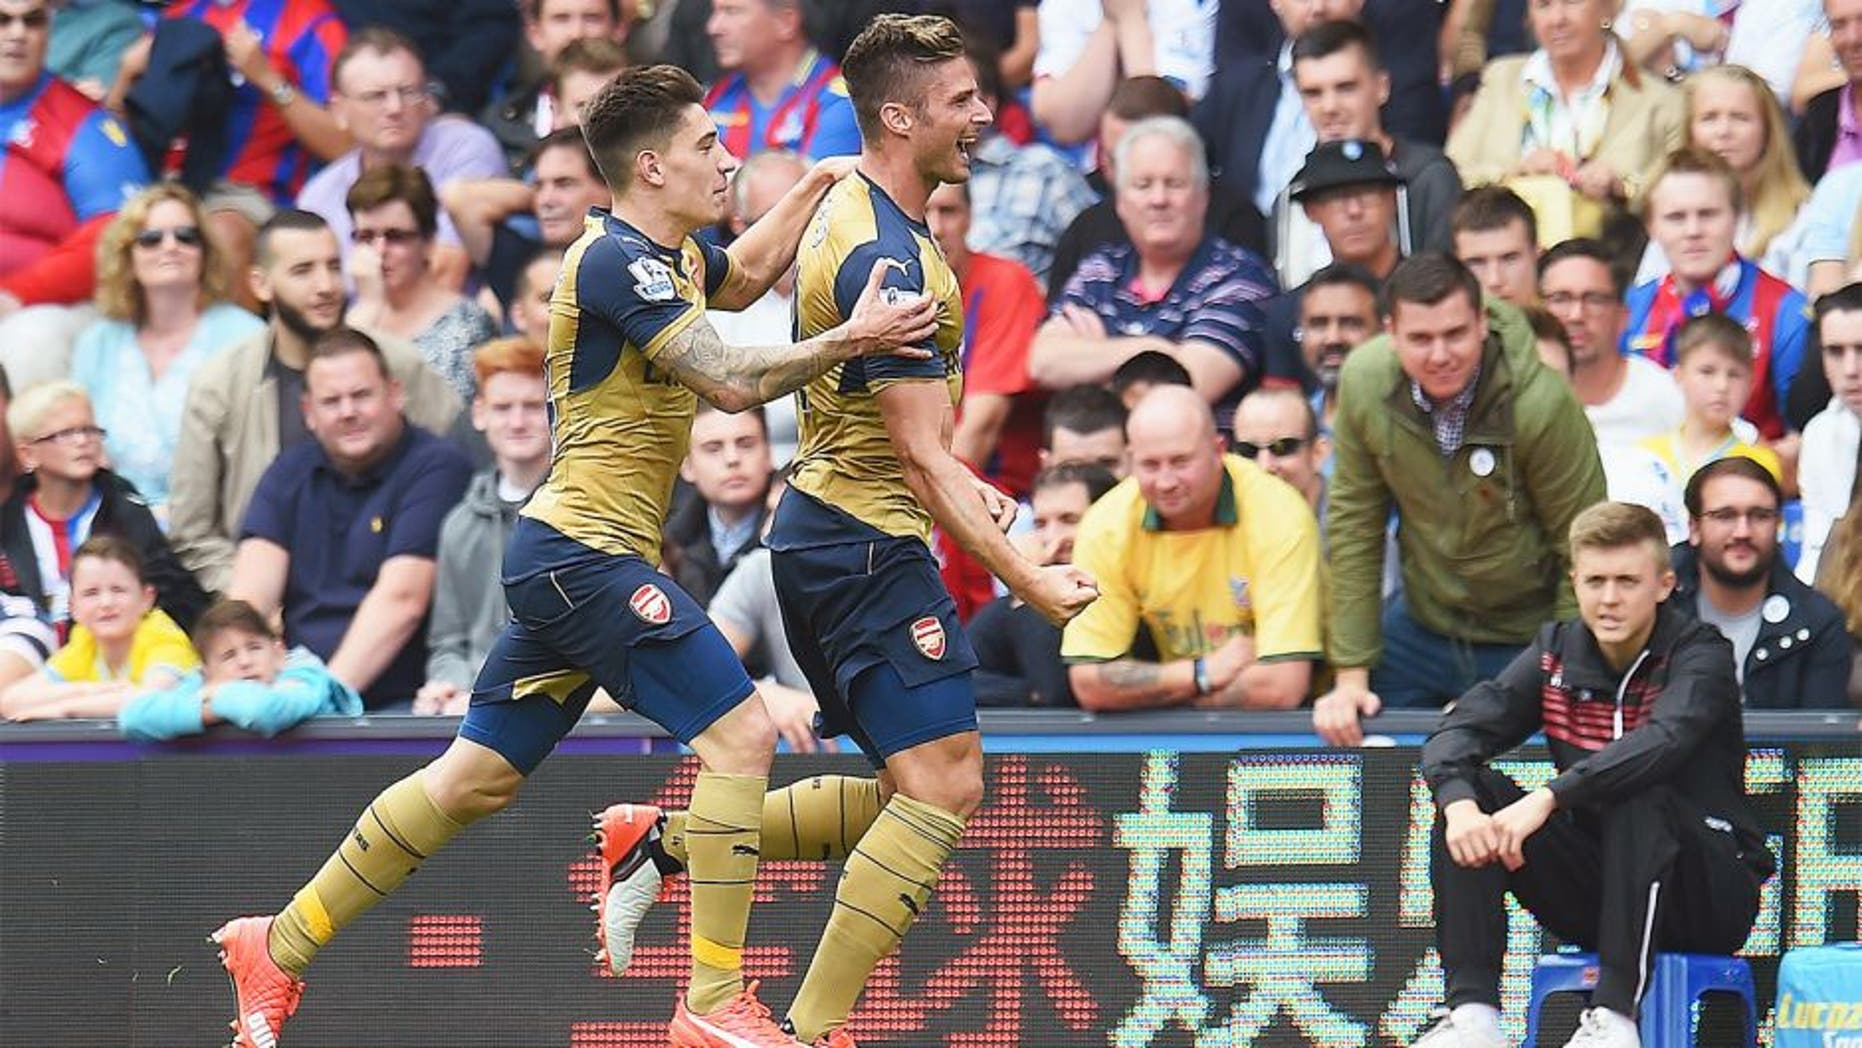 LONDON, ENGLAND - AUGUST 16: Olivier Giroud (R) of Arsenal celebrates scoring the opening goal with team mate Hector Bellerin during the Barclays Premier League match between Crystal Palace and Arsenal at Selhurst Park on August 16, 2015 in London, England. (Photo by Michael Regan/Getty Images)